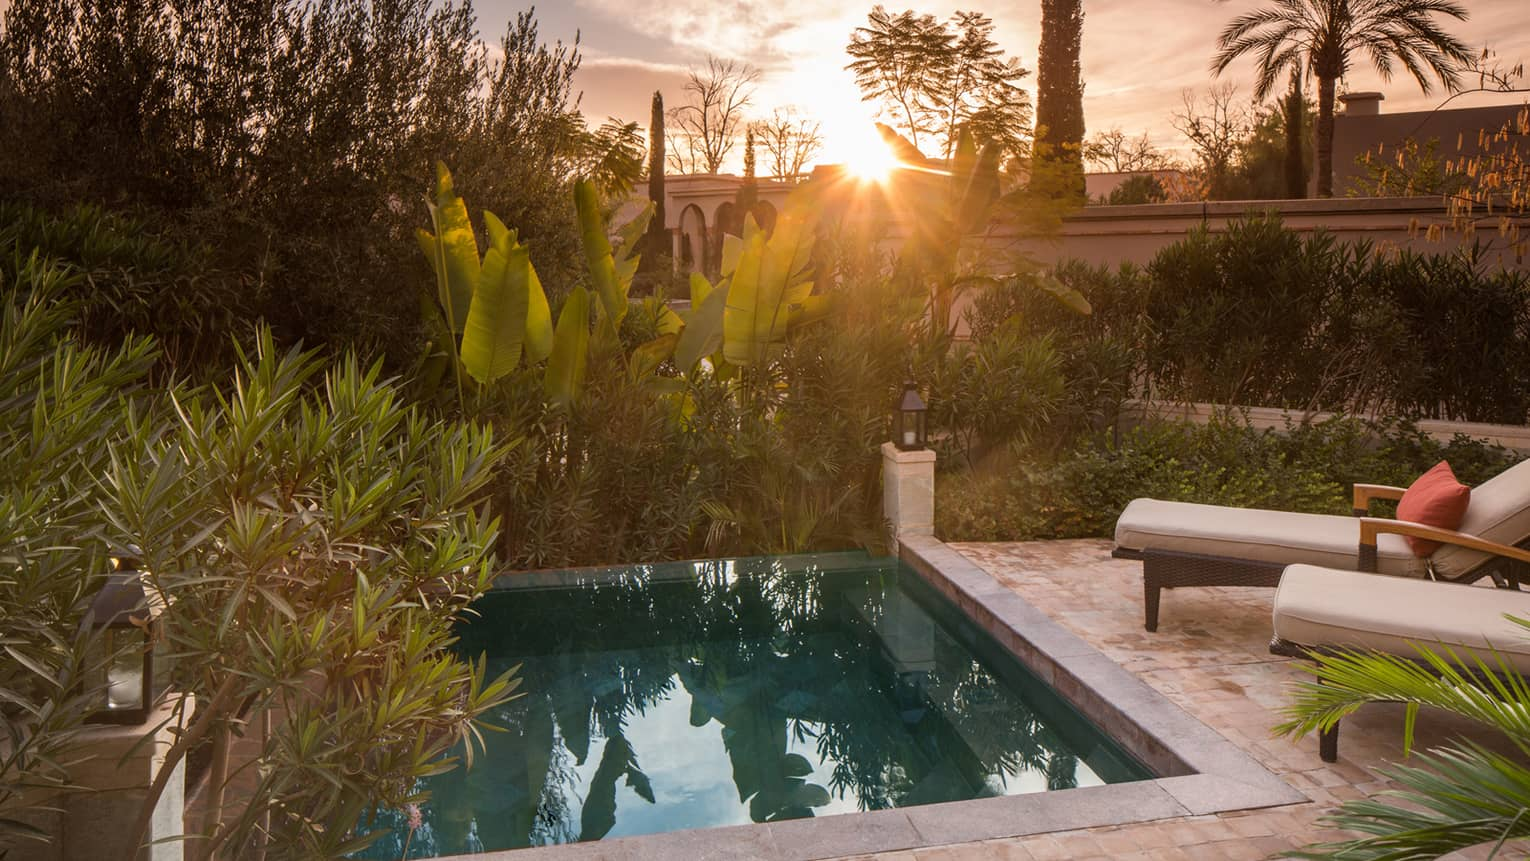 Sunset over tropical plants, garden by private villa plunge pool